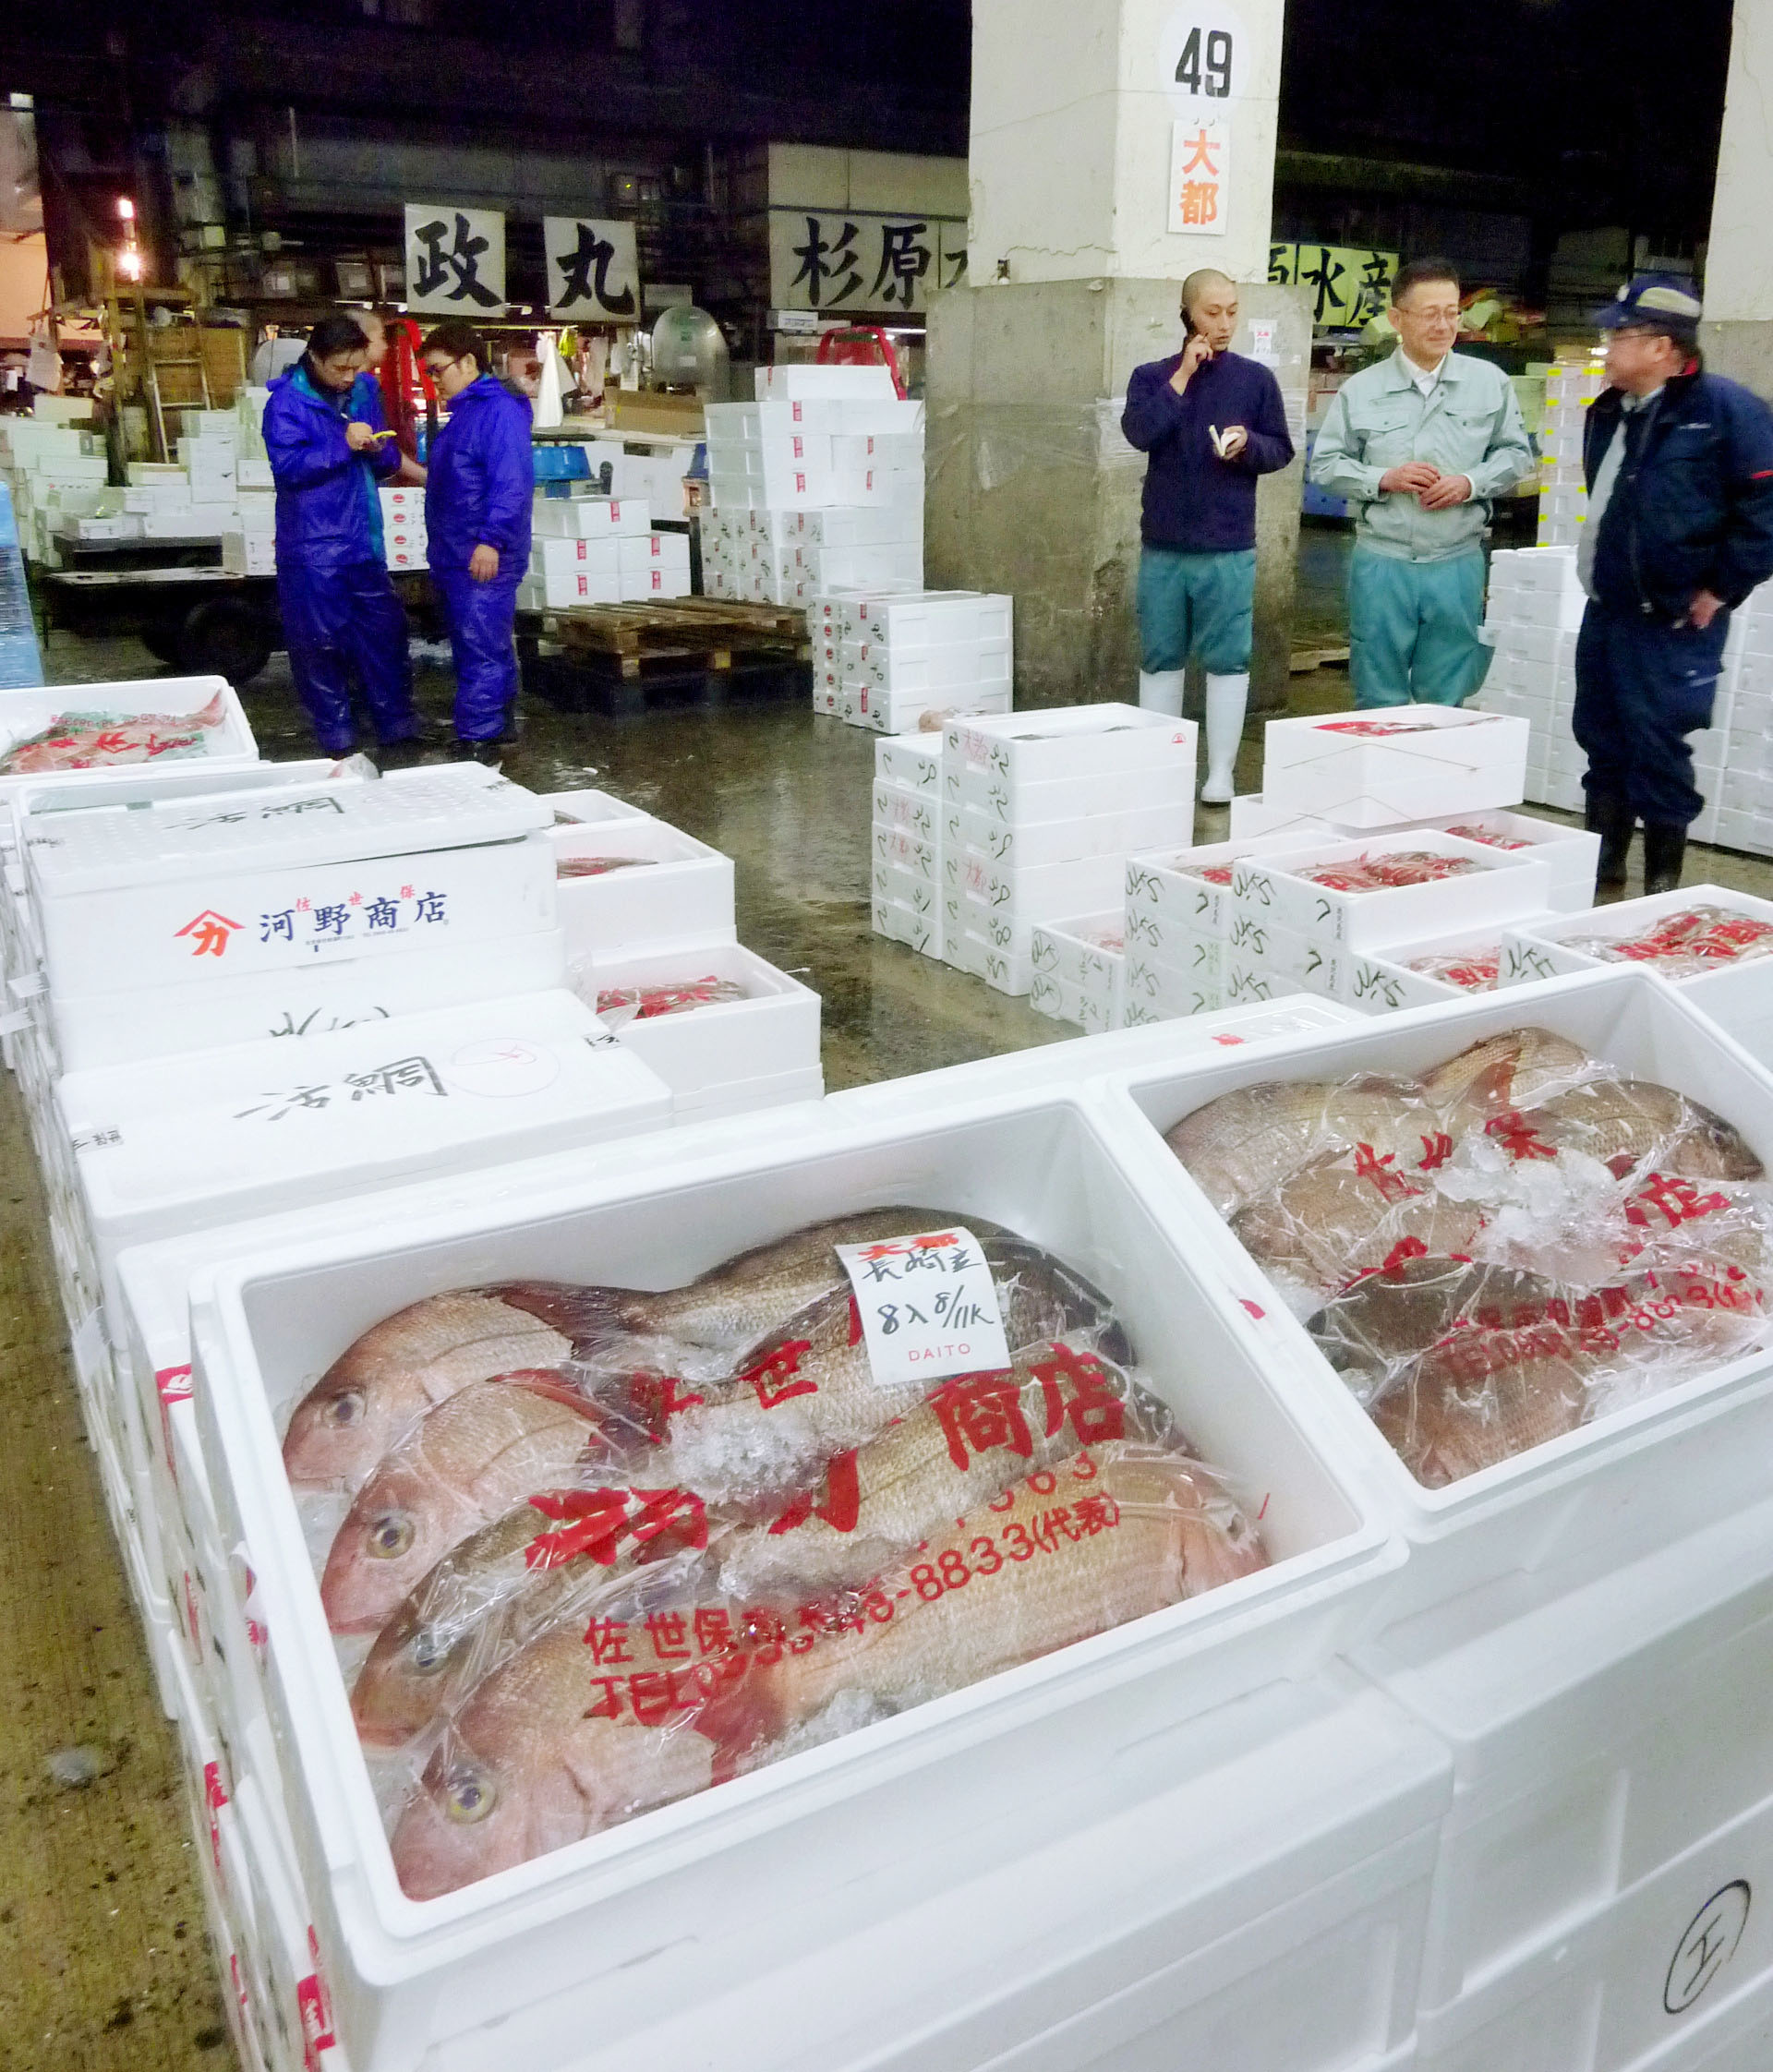 Back in favor: Fresh fish are traded at Tsukiji market in Tokyo on Tuesday. The volume of transactions at the market has returned to prequake levels.   KYODO